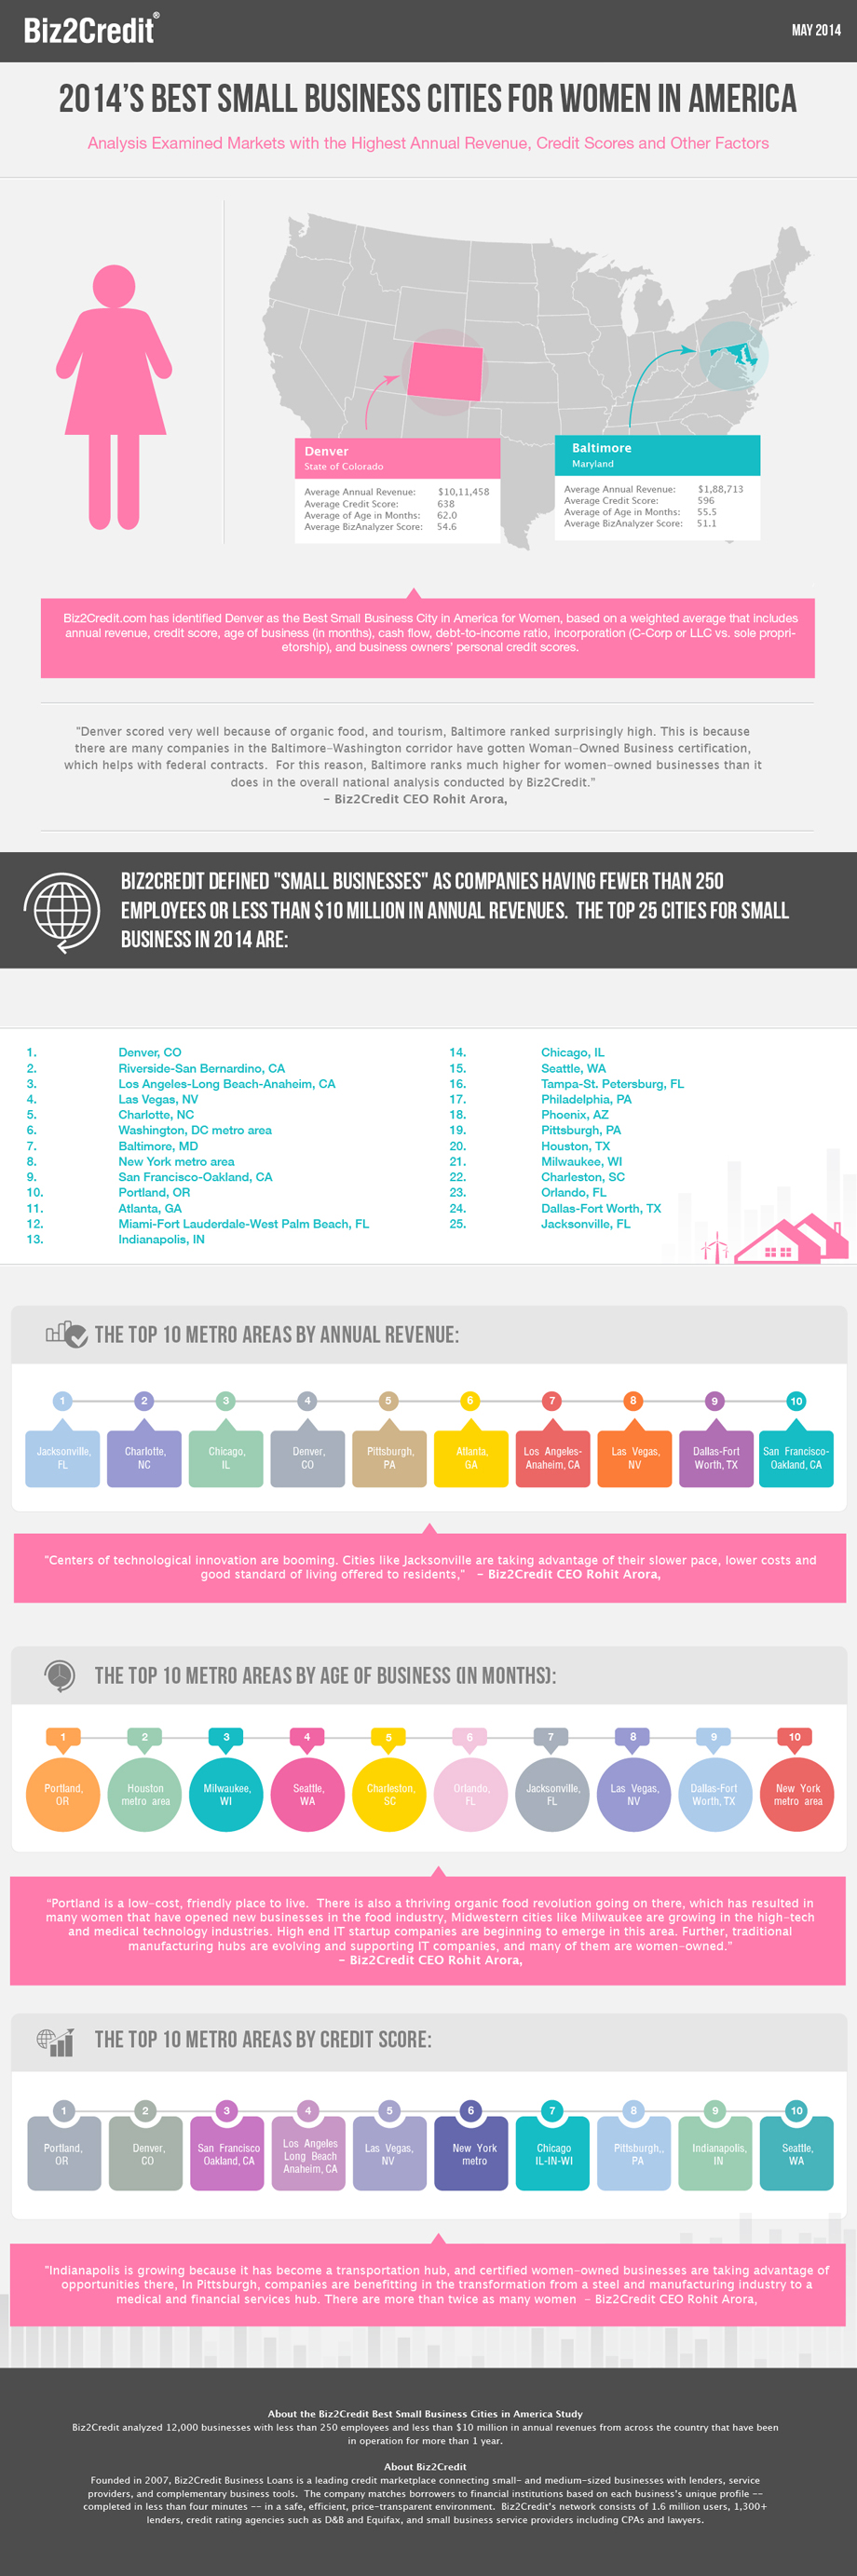 2014 Best Small Business Cities in America for Women